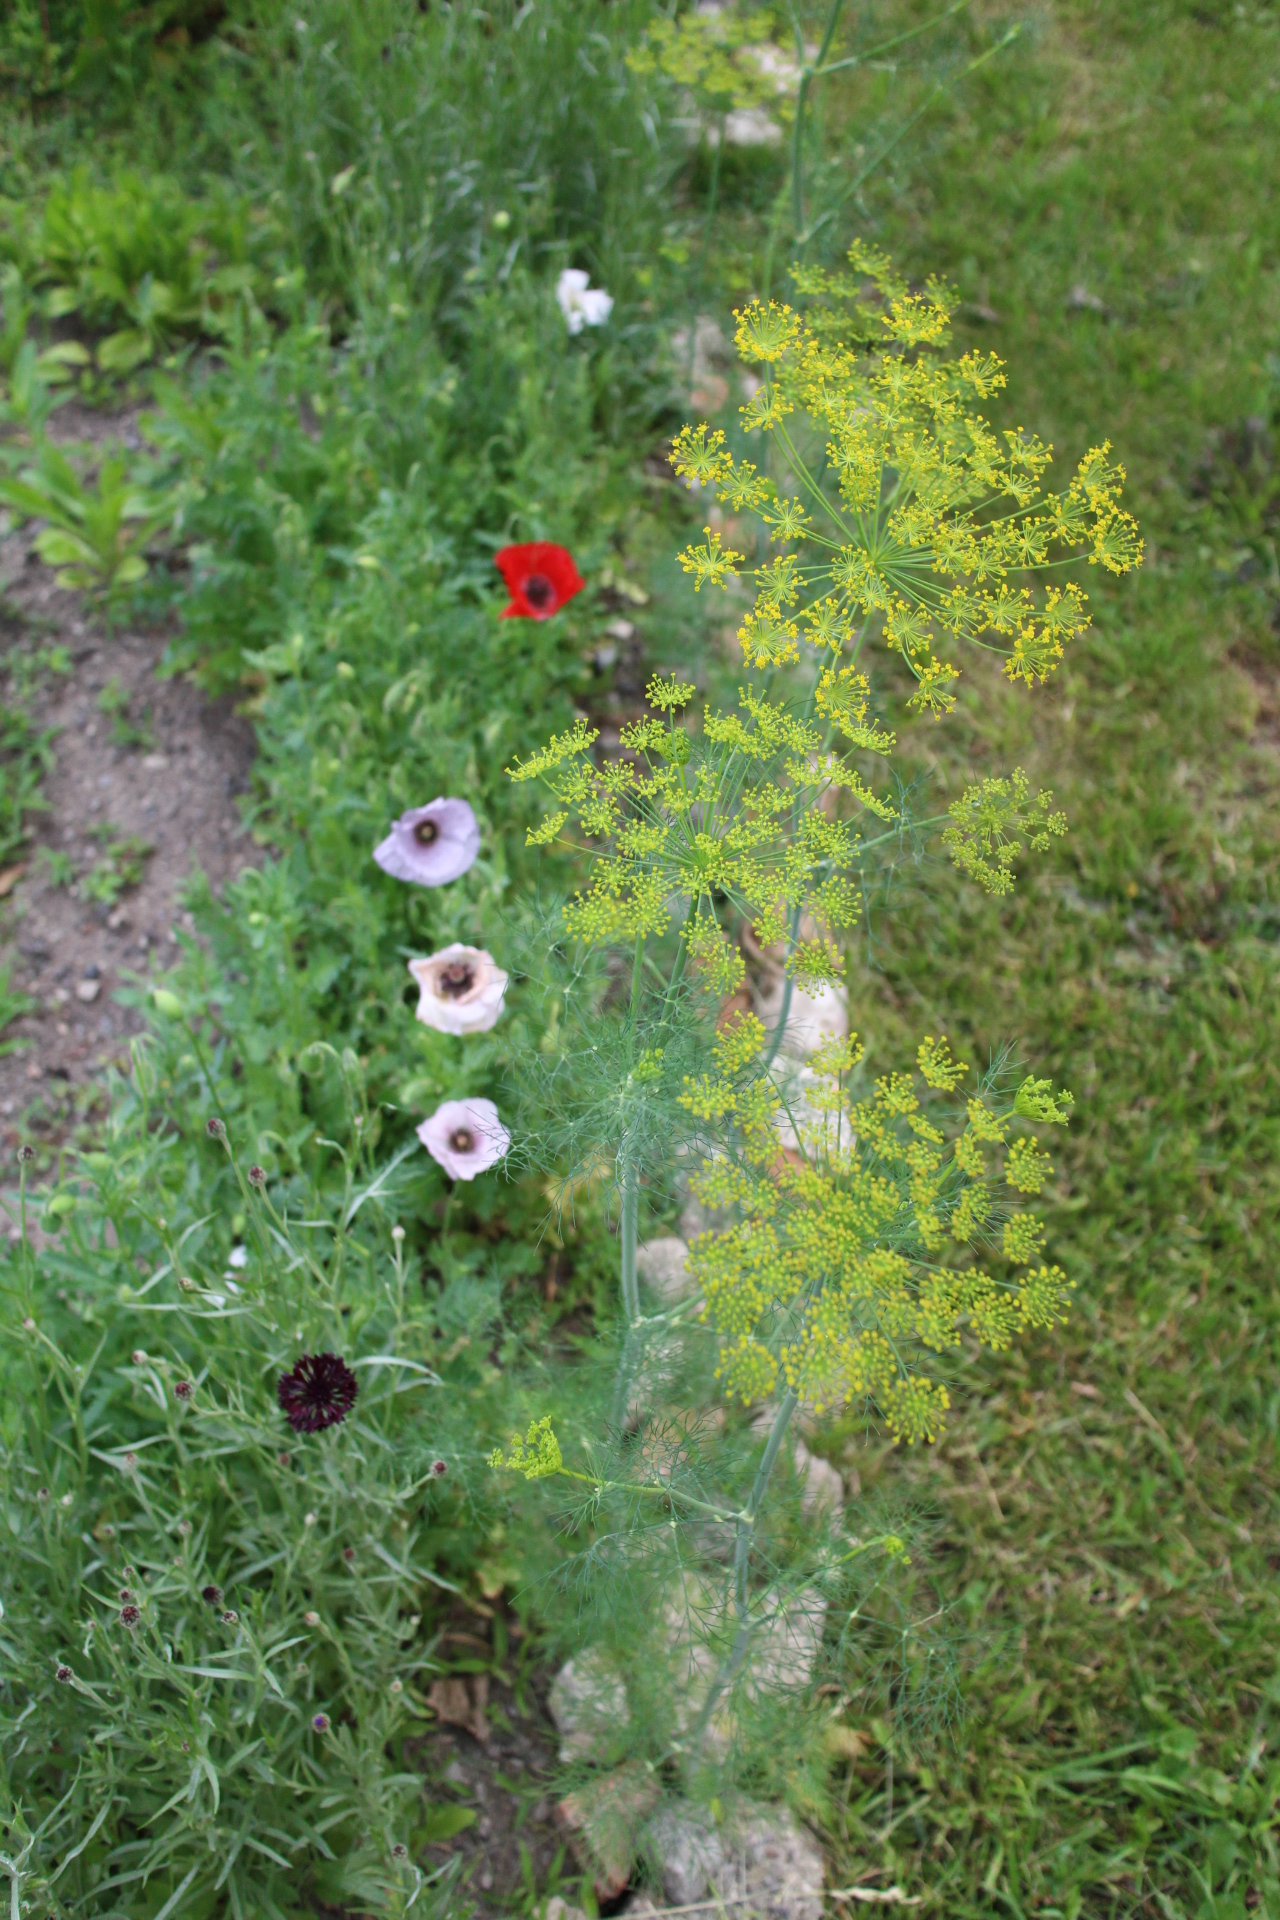 First of the flowers! Poppies, bachelor's buttons, and dill